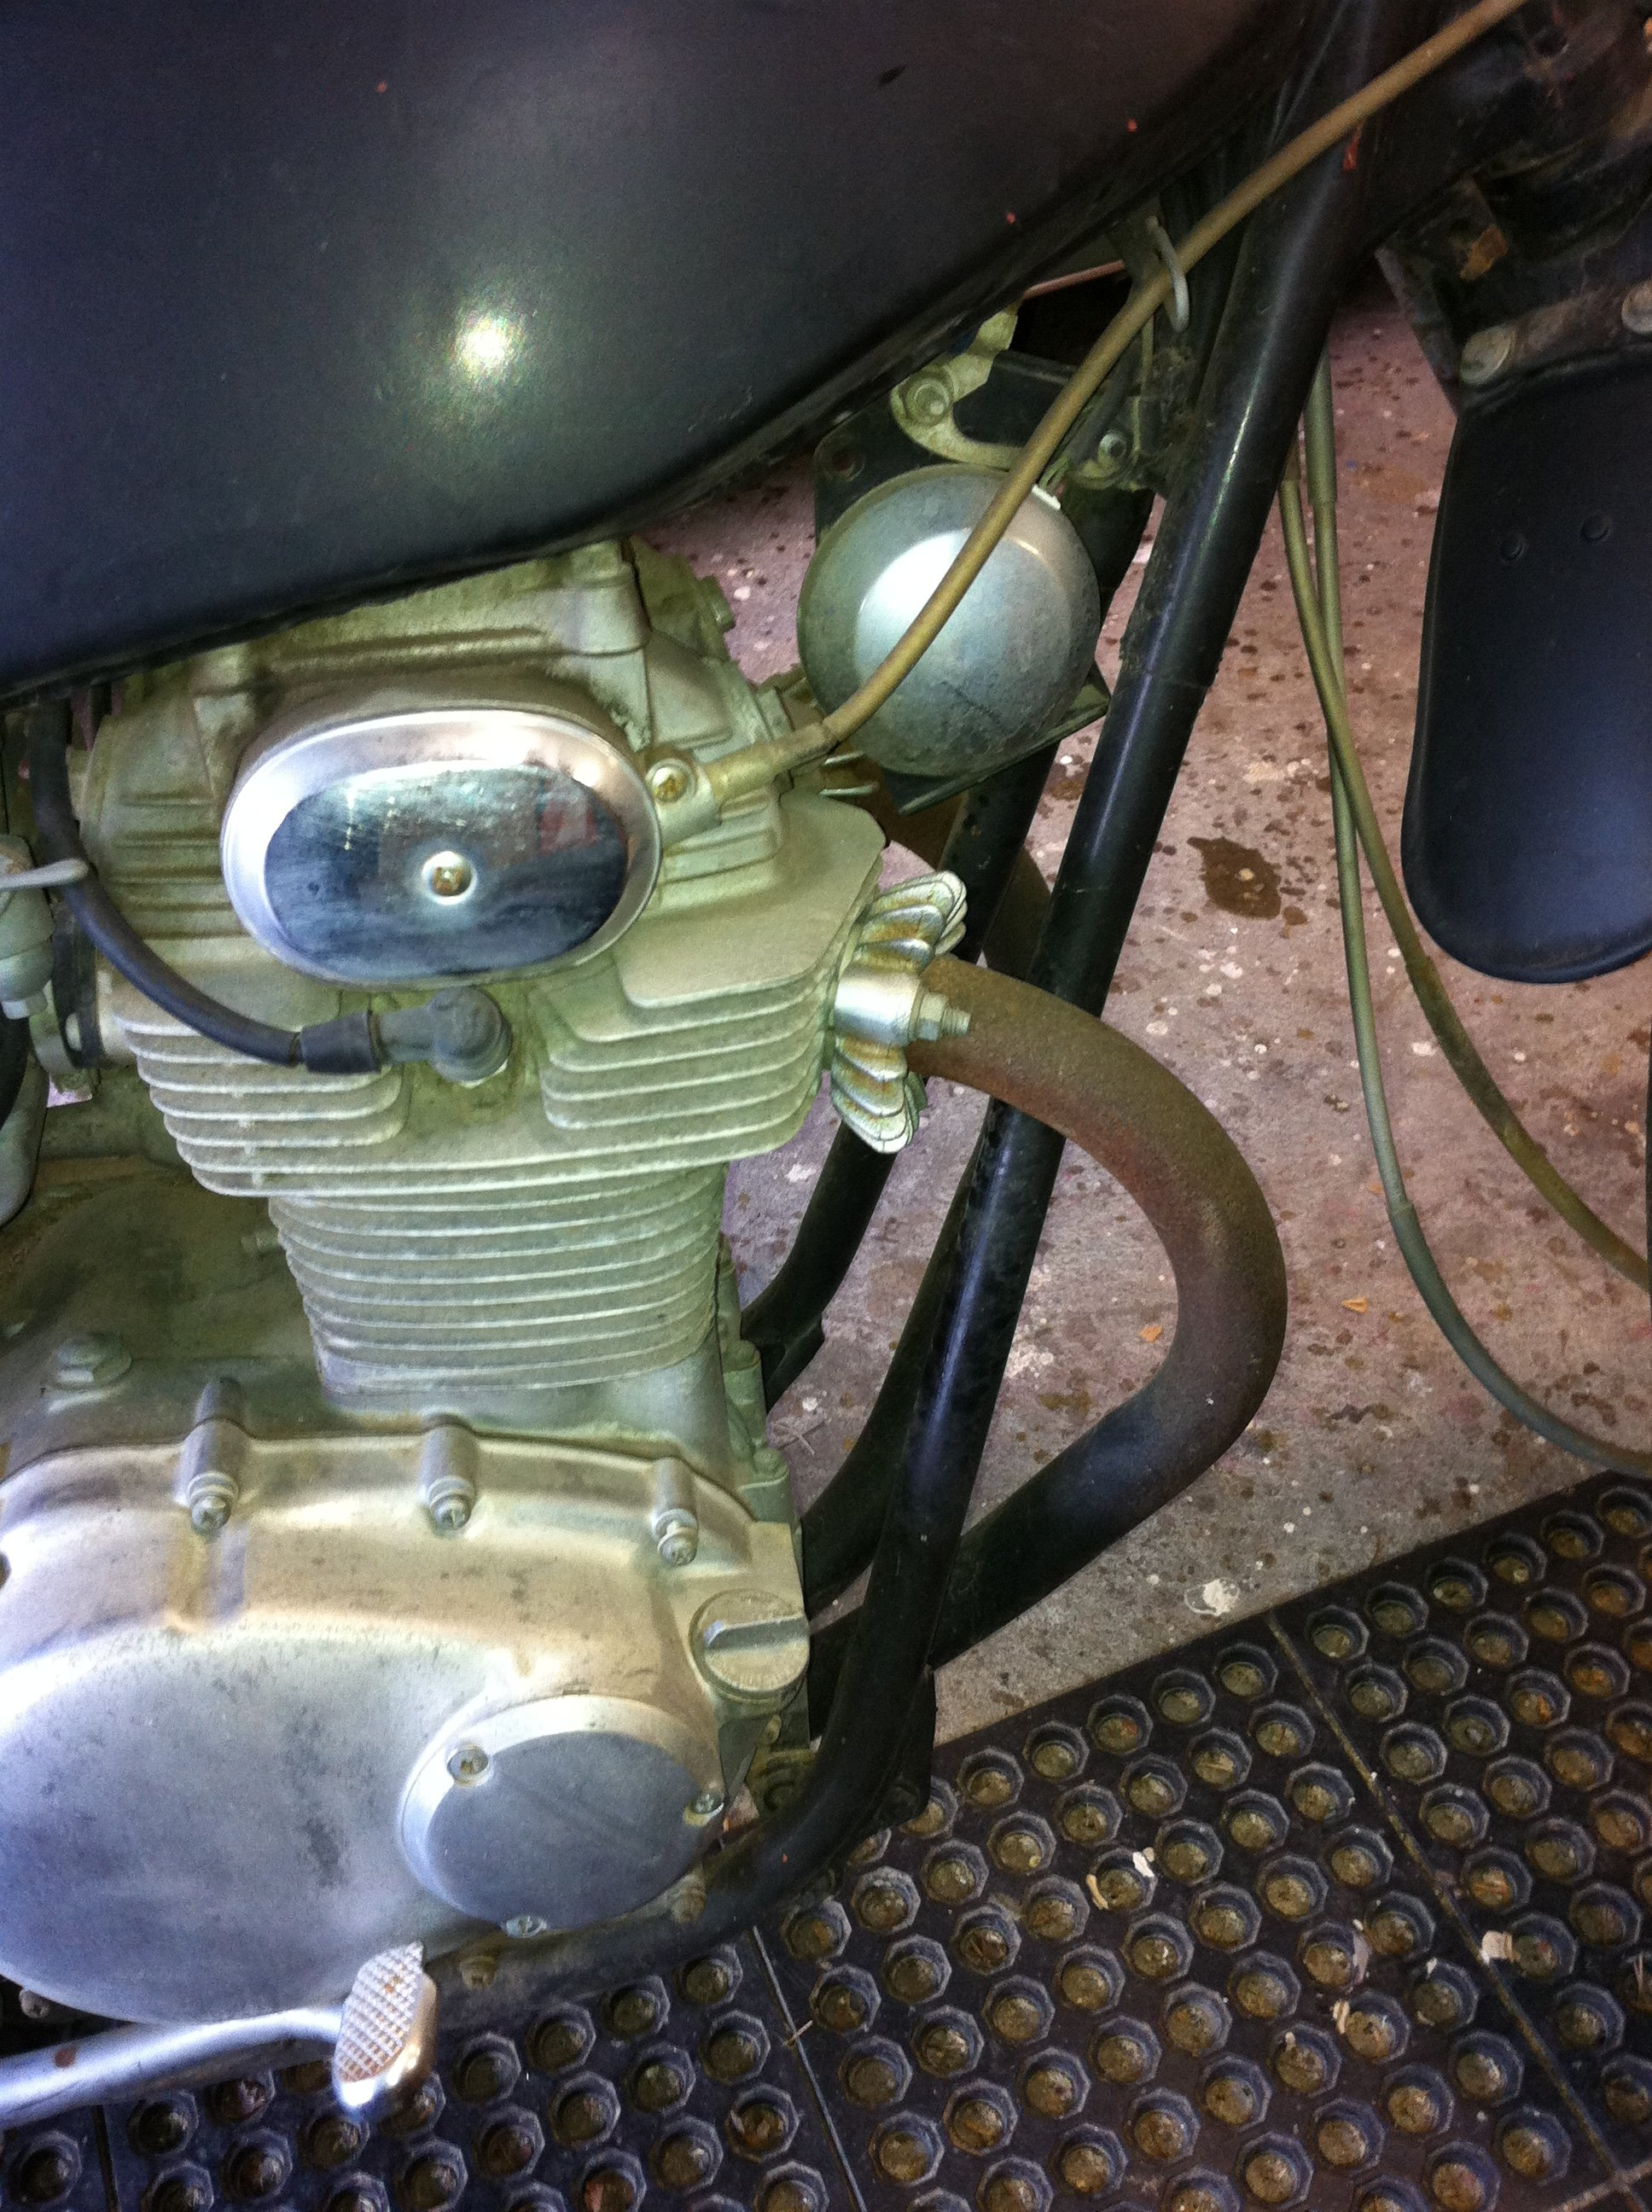 Has a CB750 horn installed